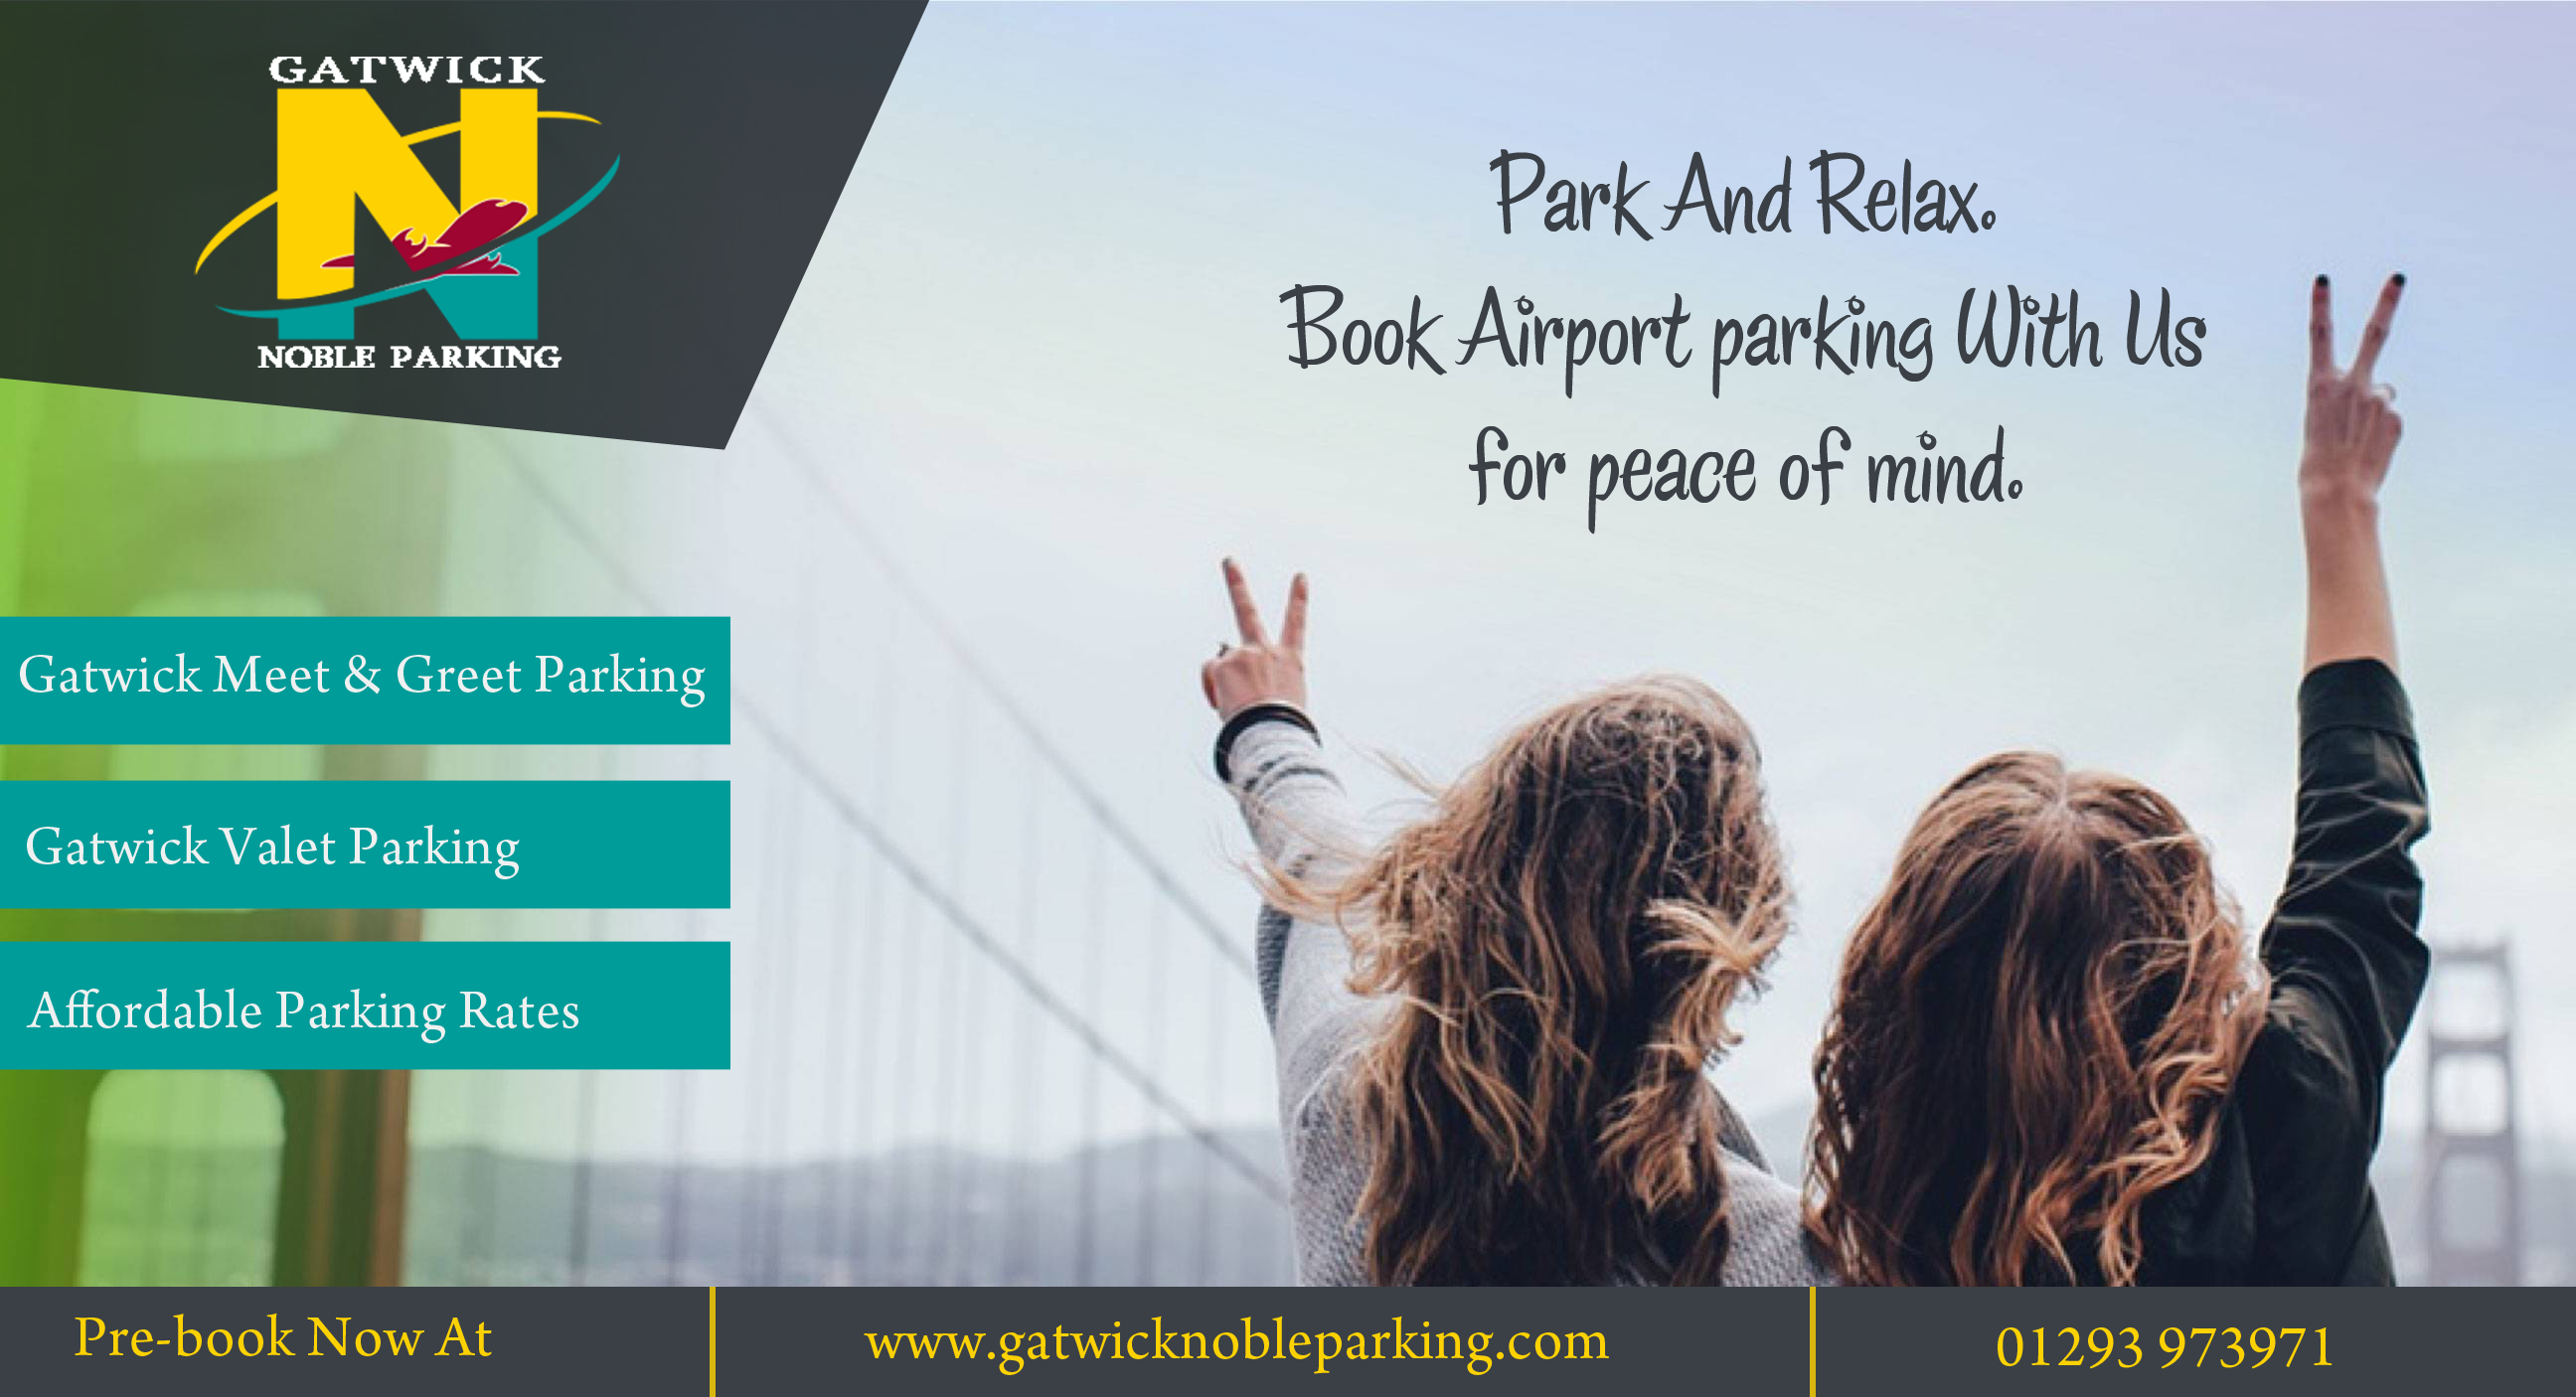 Park And Relaxok Airport Parking With Us For Peace Of Mind